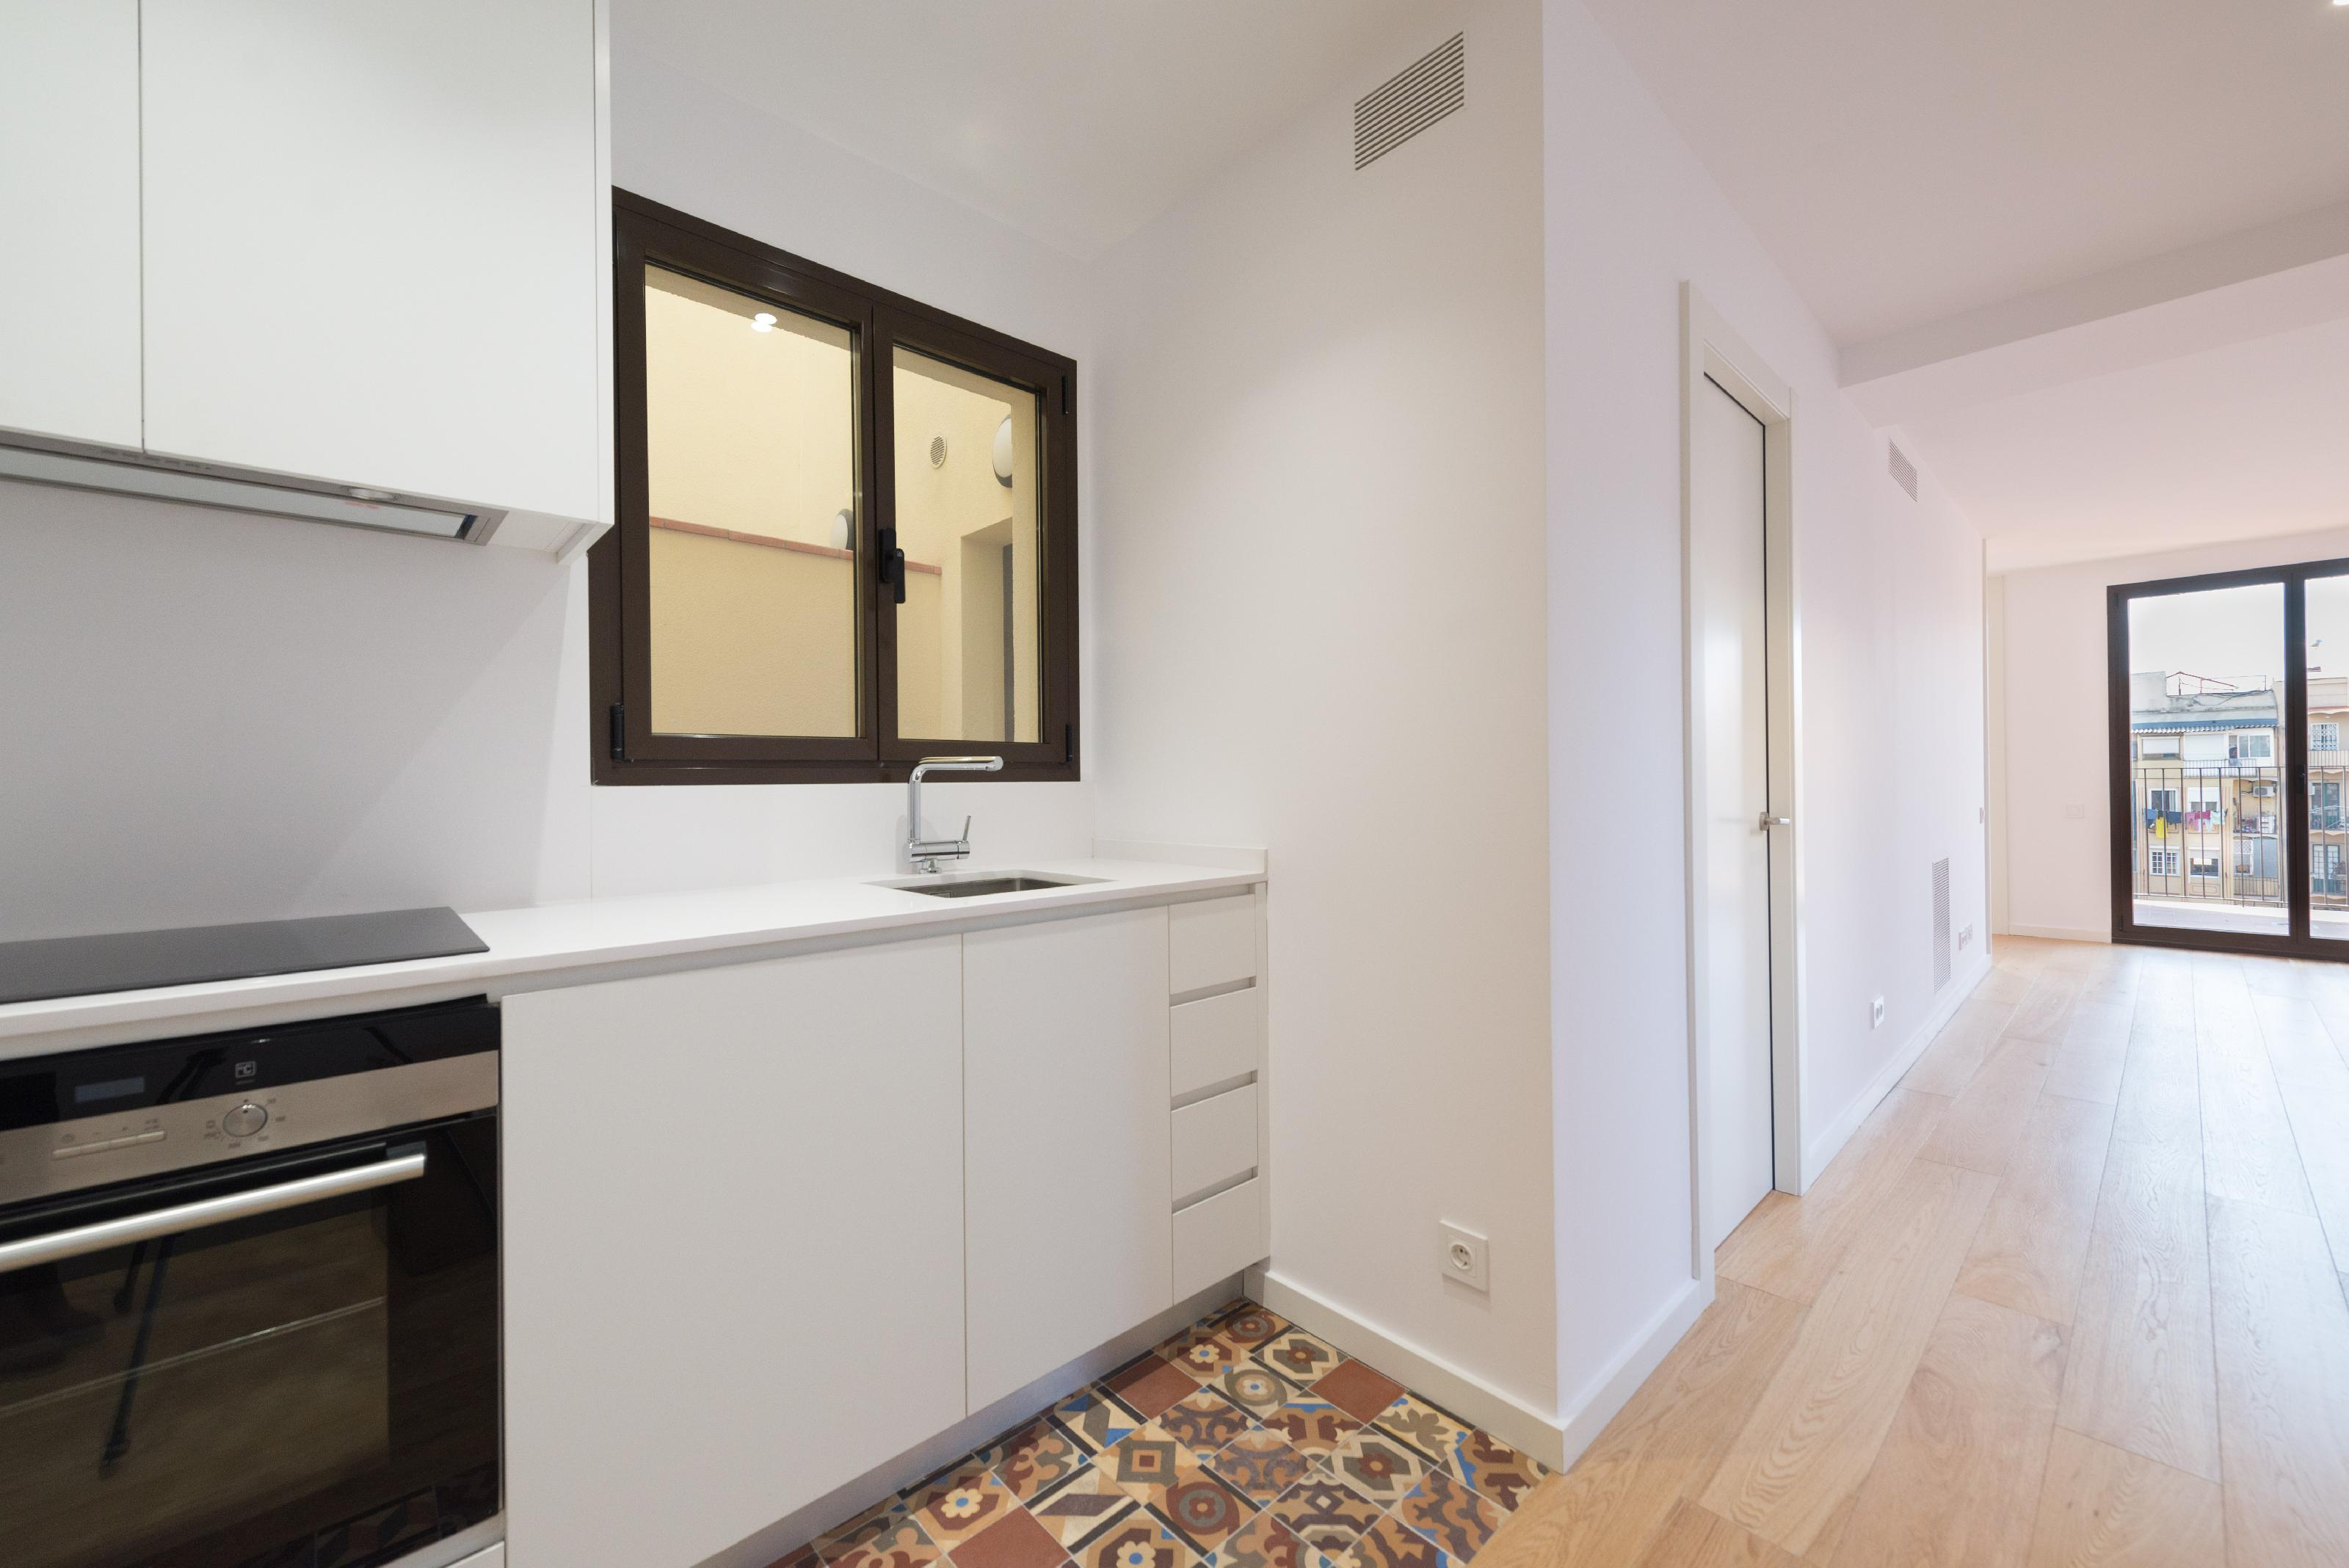 216125 Apartment for sale in Eixample, Old Left Eixample 7